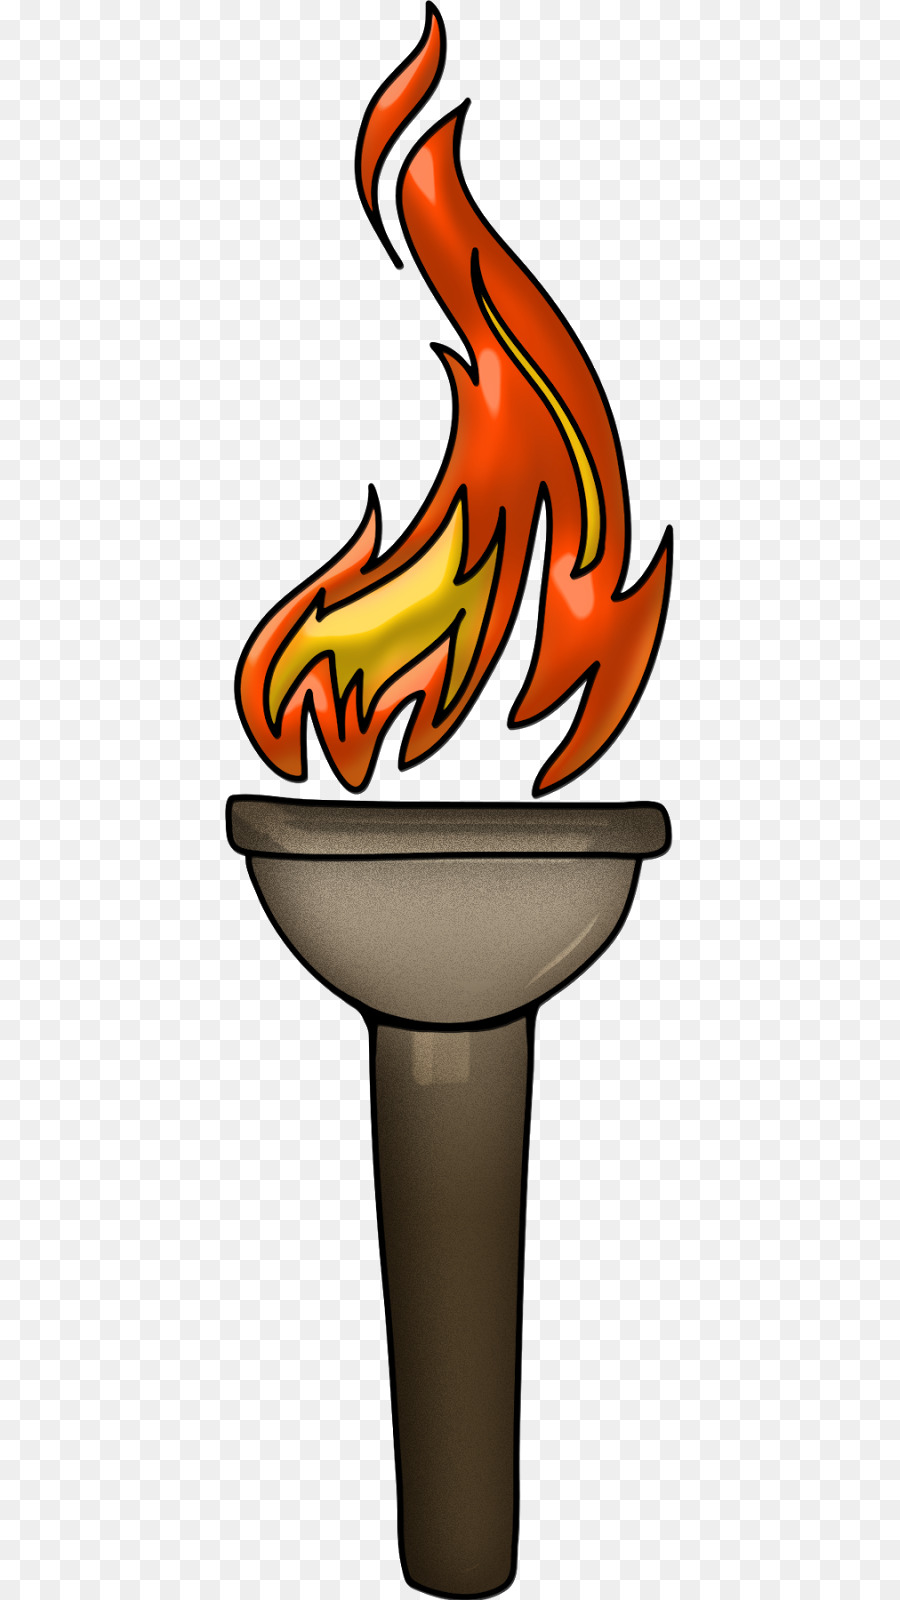 olympic games 2018 winter olympics torch relay clip art torch rh kisspng com olympic torch clip art free olympic torch images 2012 clipart